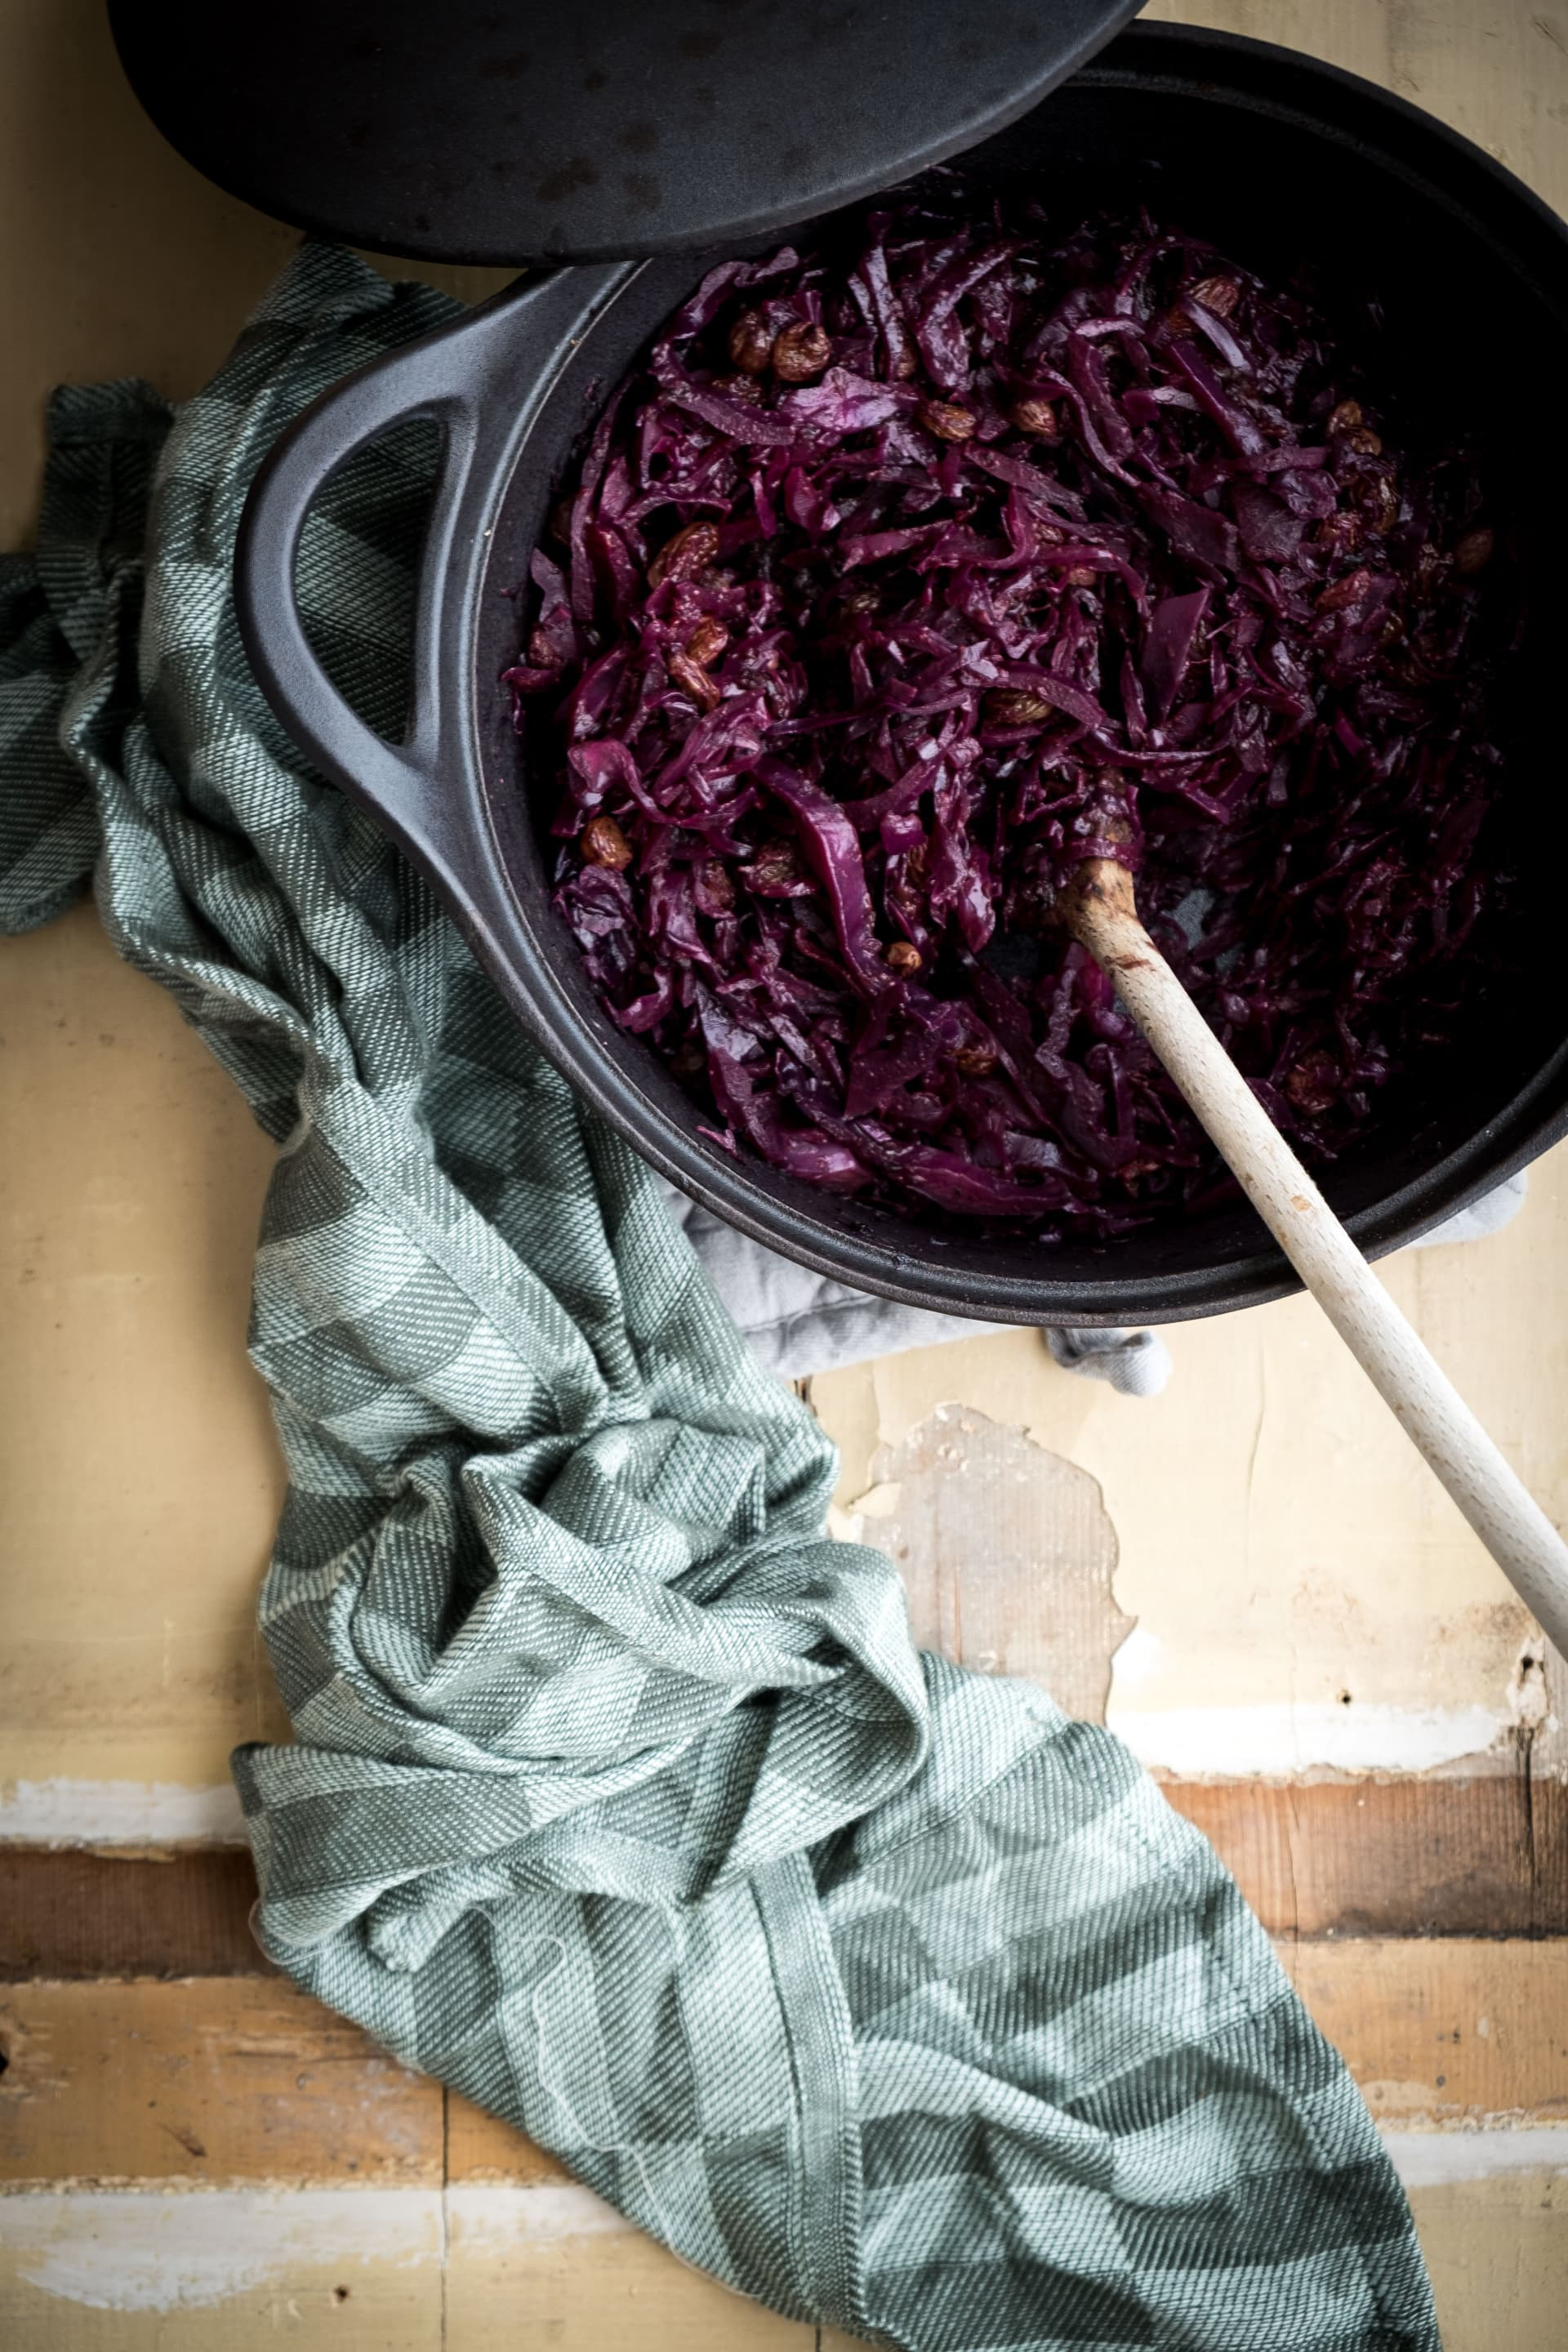 Steamed red cabbage with Chinese 5 spice and plums